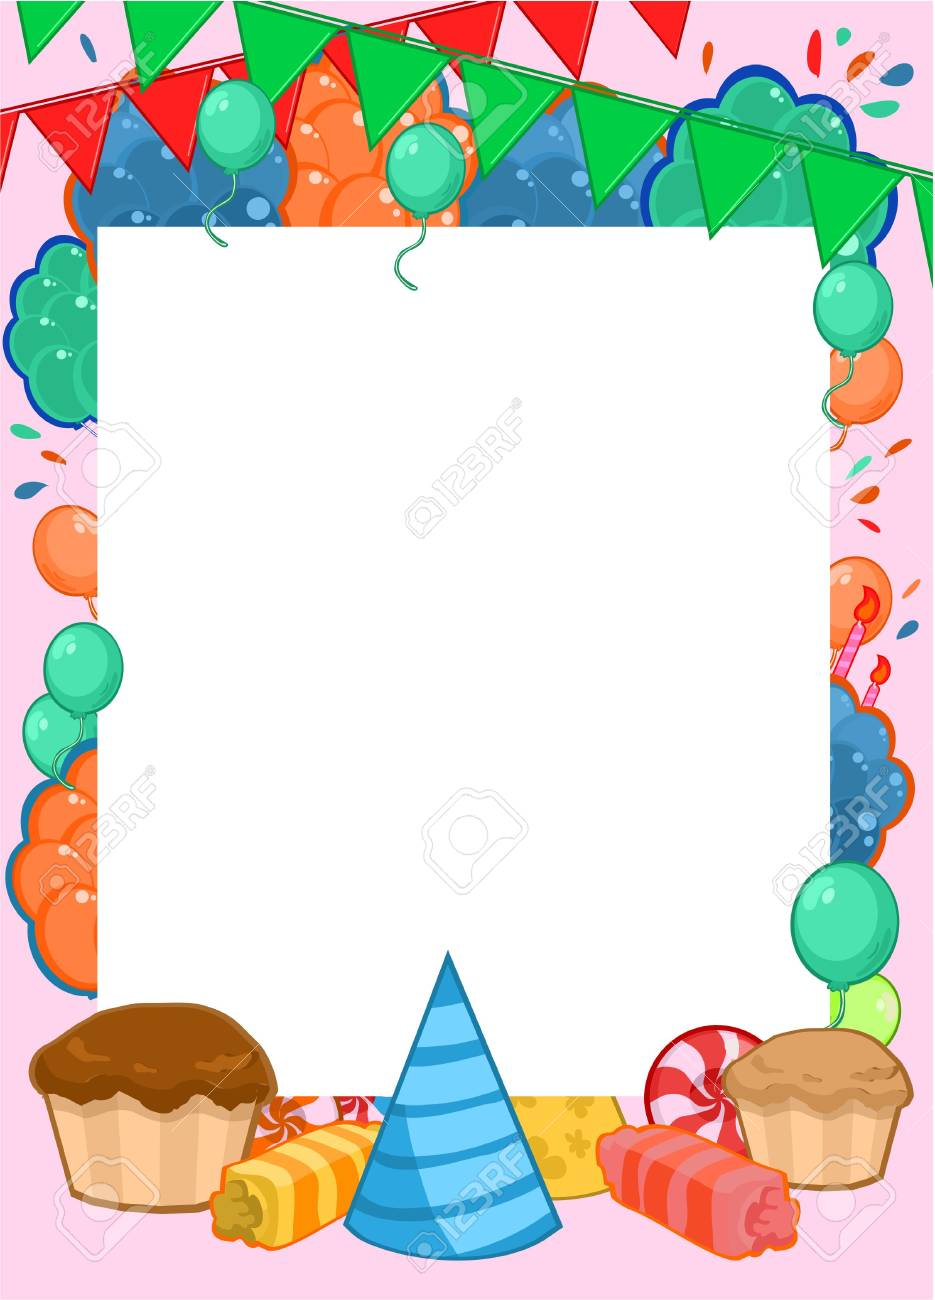 Happy Birthday Invitation Bright Template With Frame For Text ...